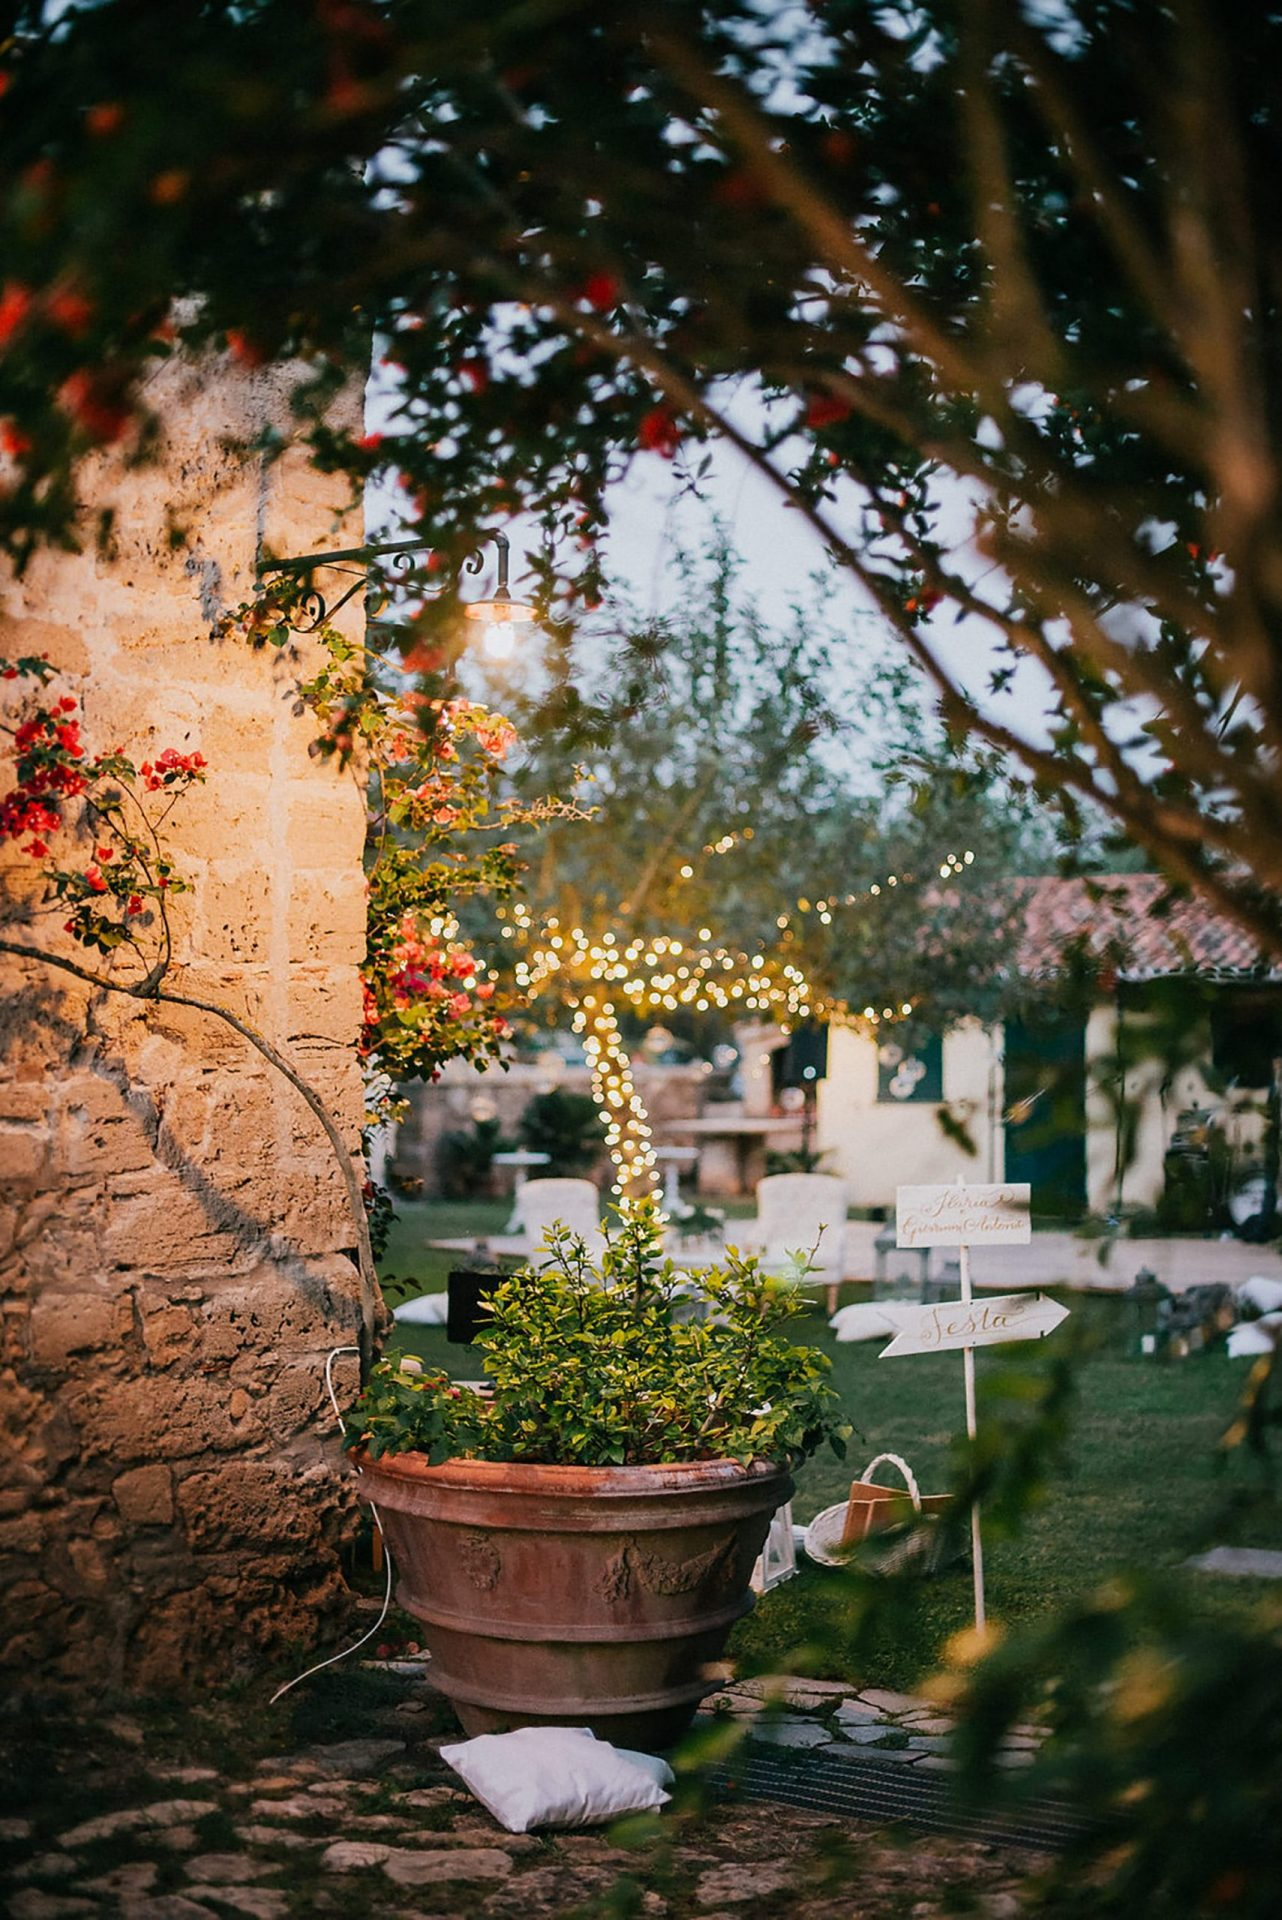 Ilaria e Giovanni, wedding at country villa in Italy